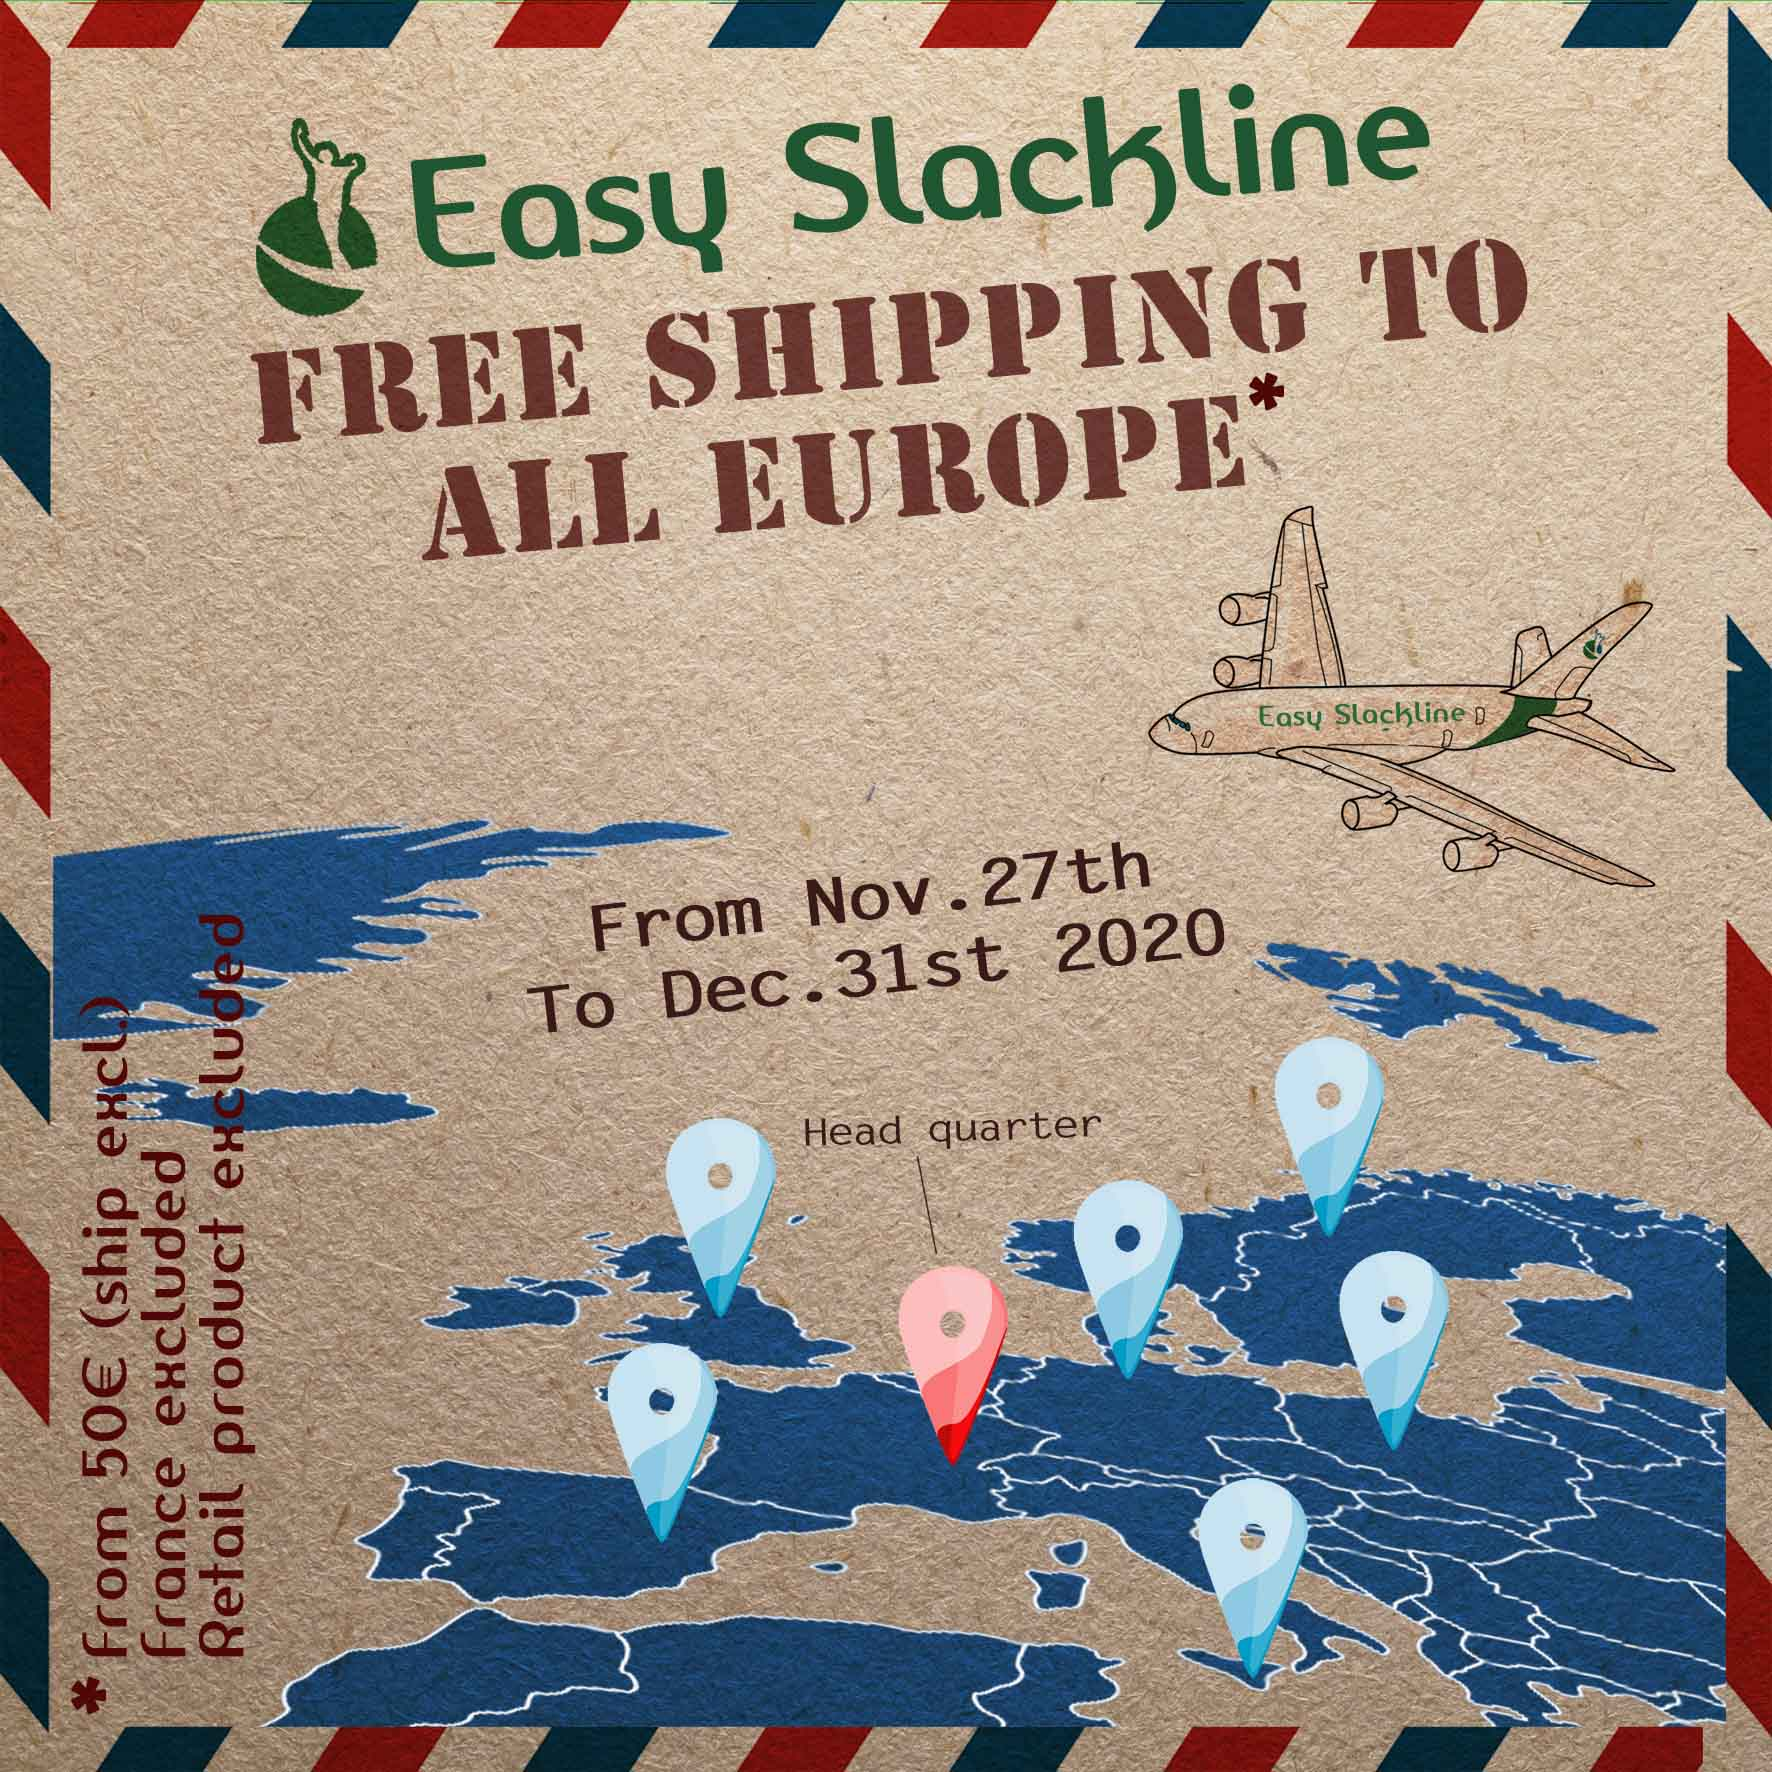 black friday easy slackline free shipping europe